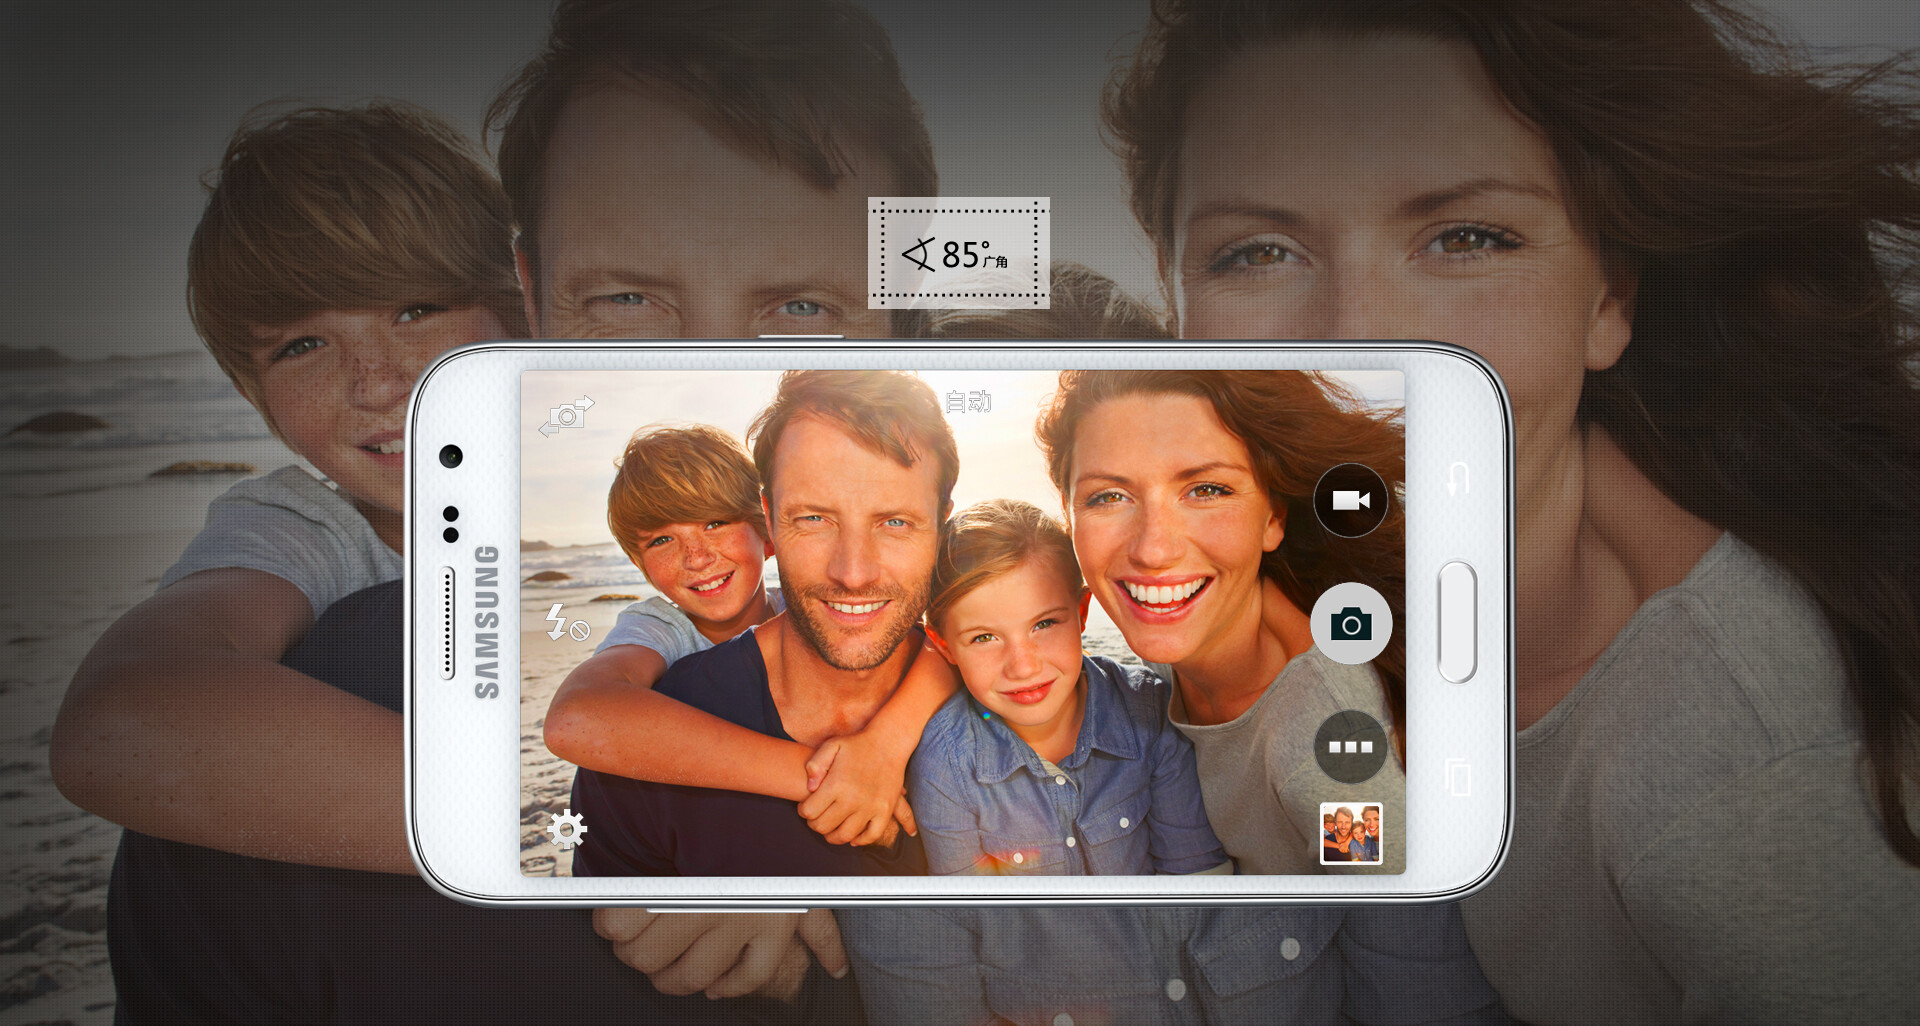 Samsung Intros The Galaxy Core Max With Super AMOLED